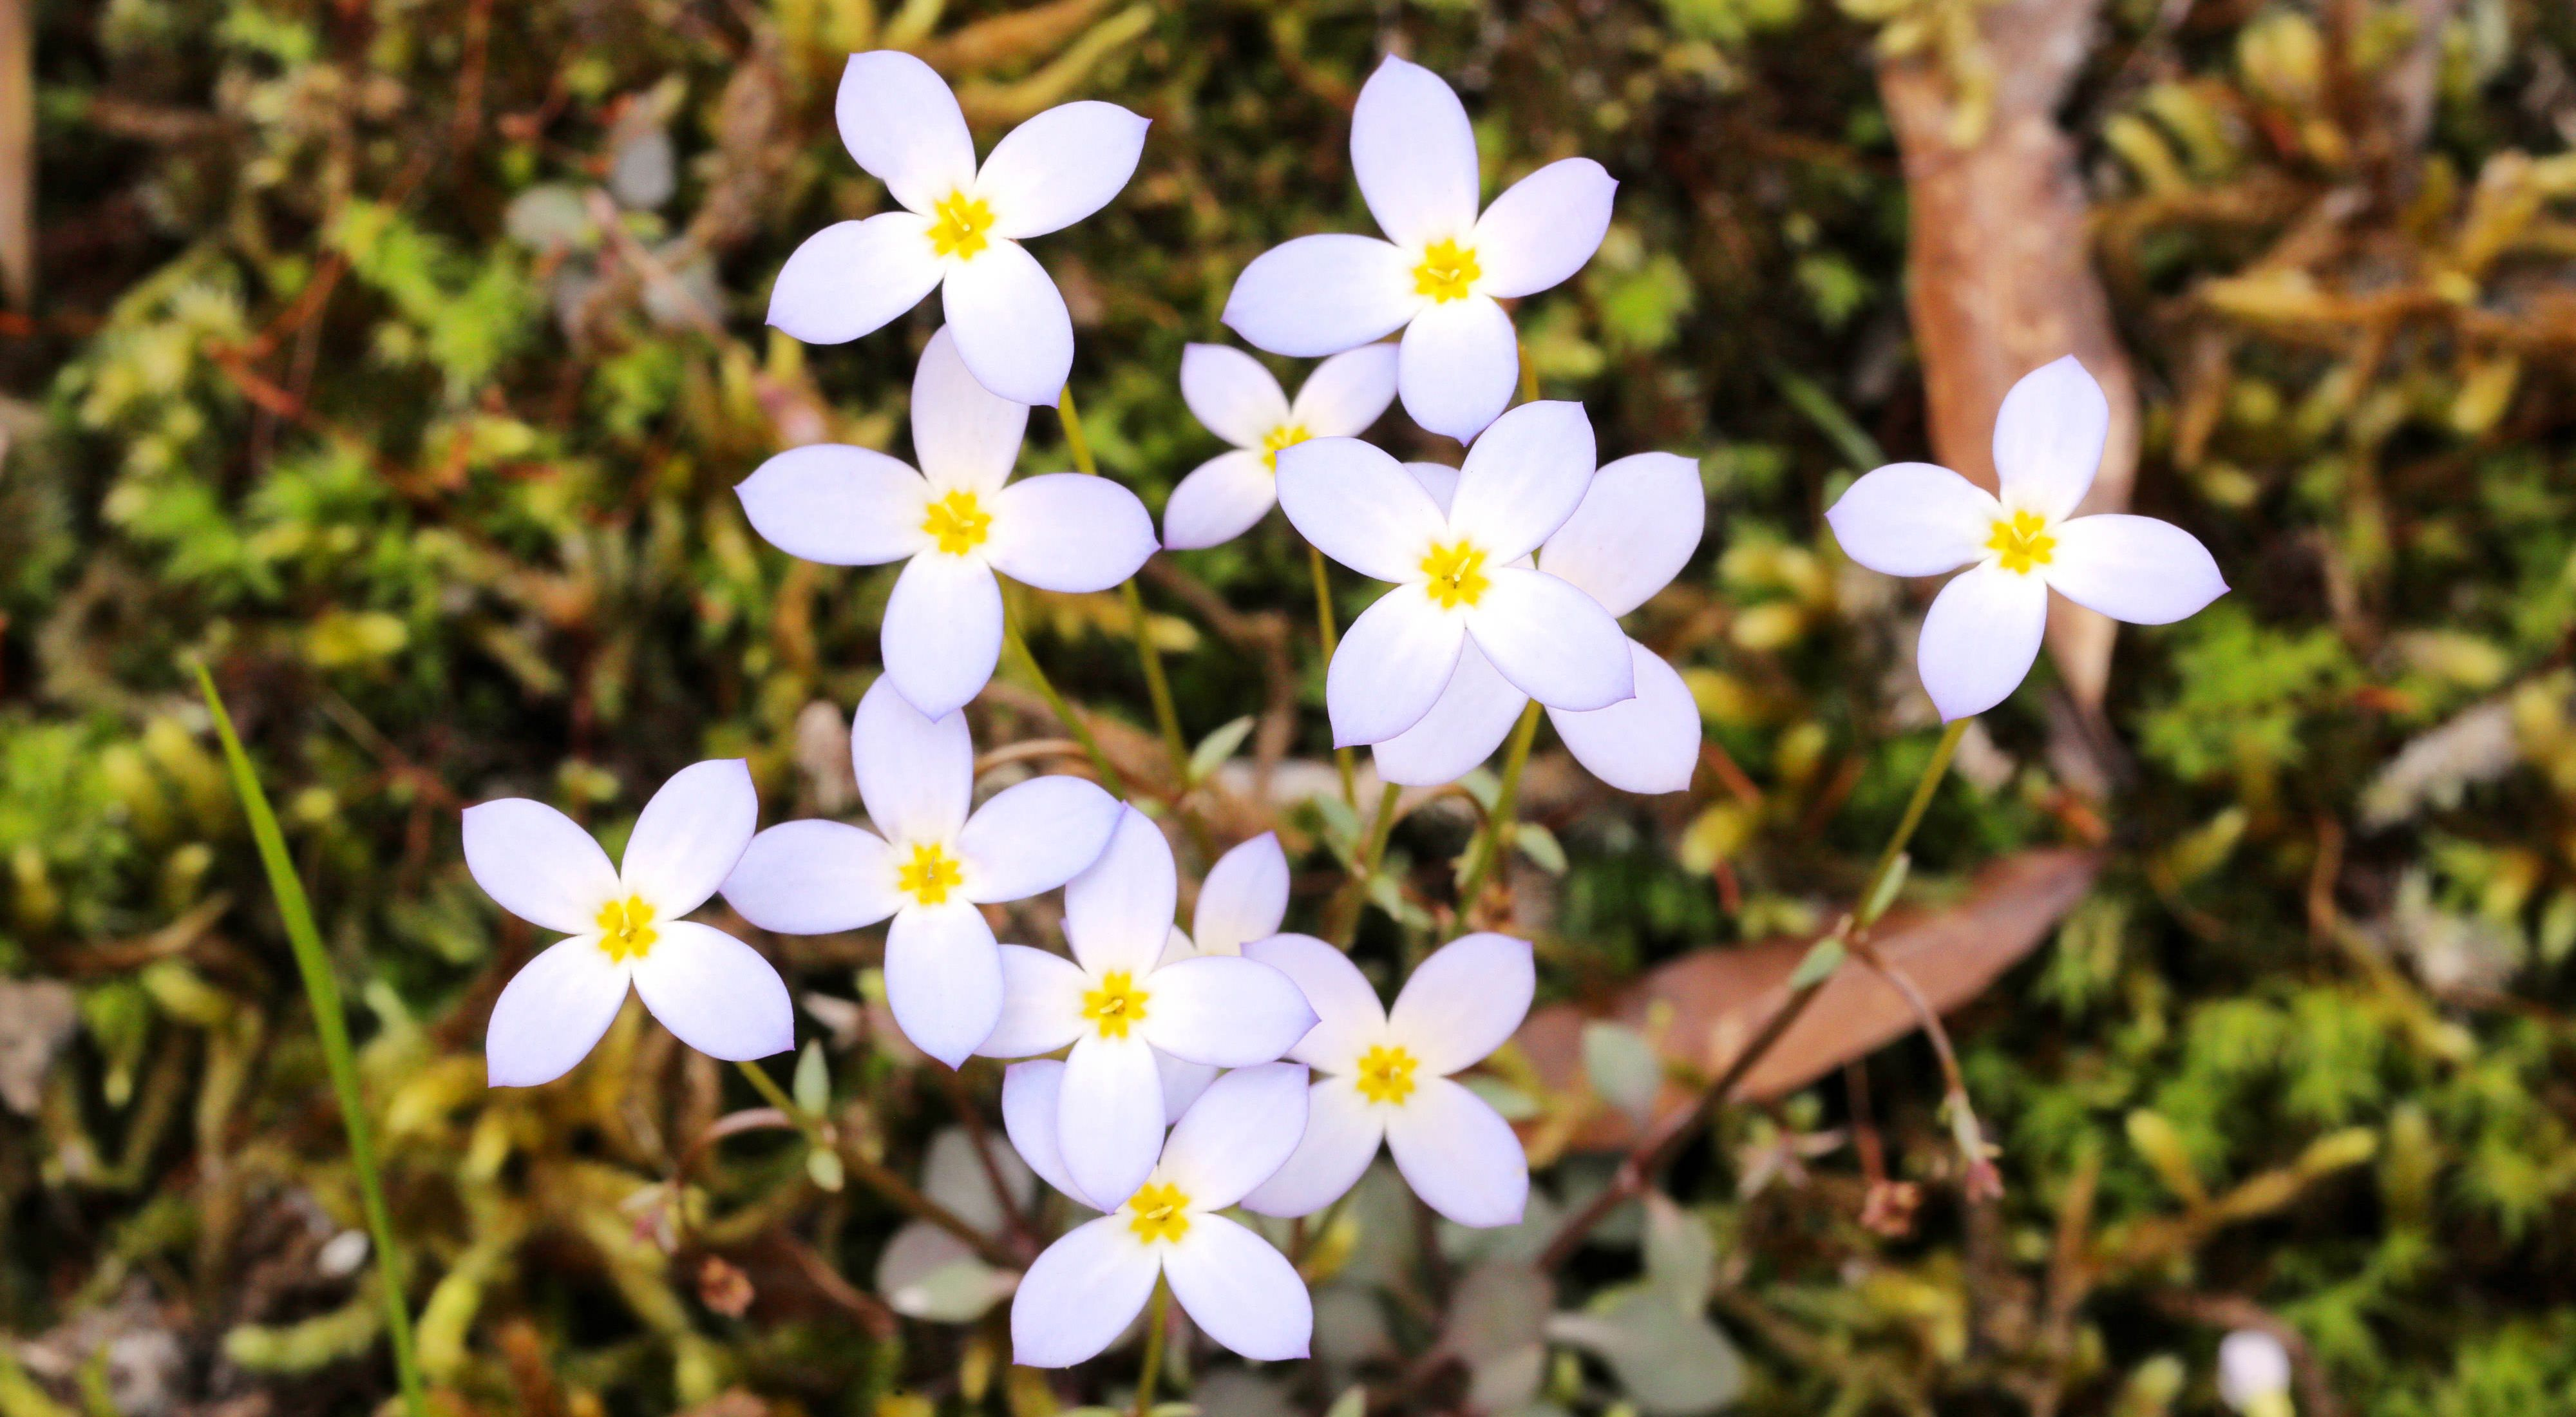 Wildflowers emerge from a forest floor.